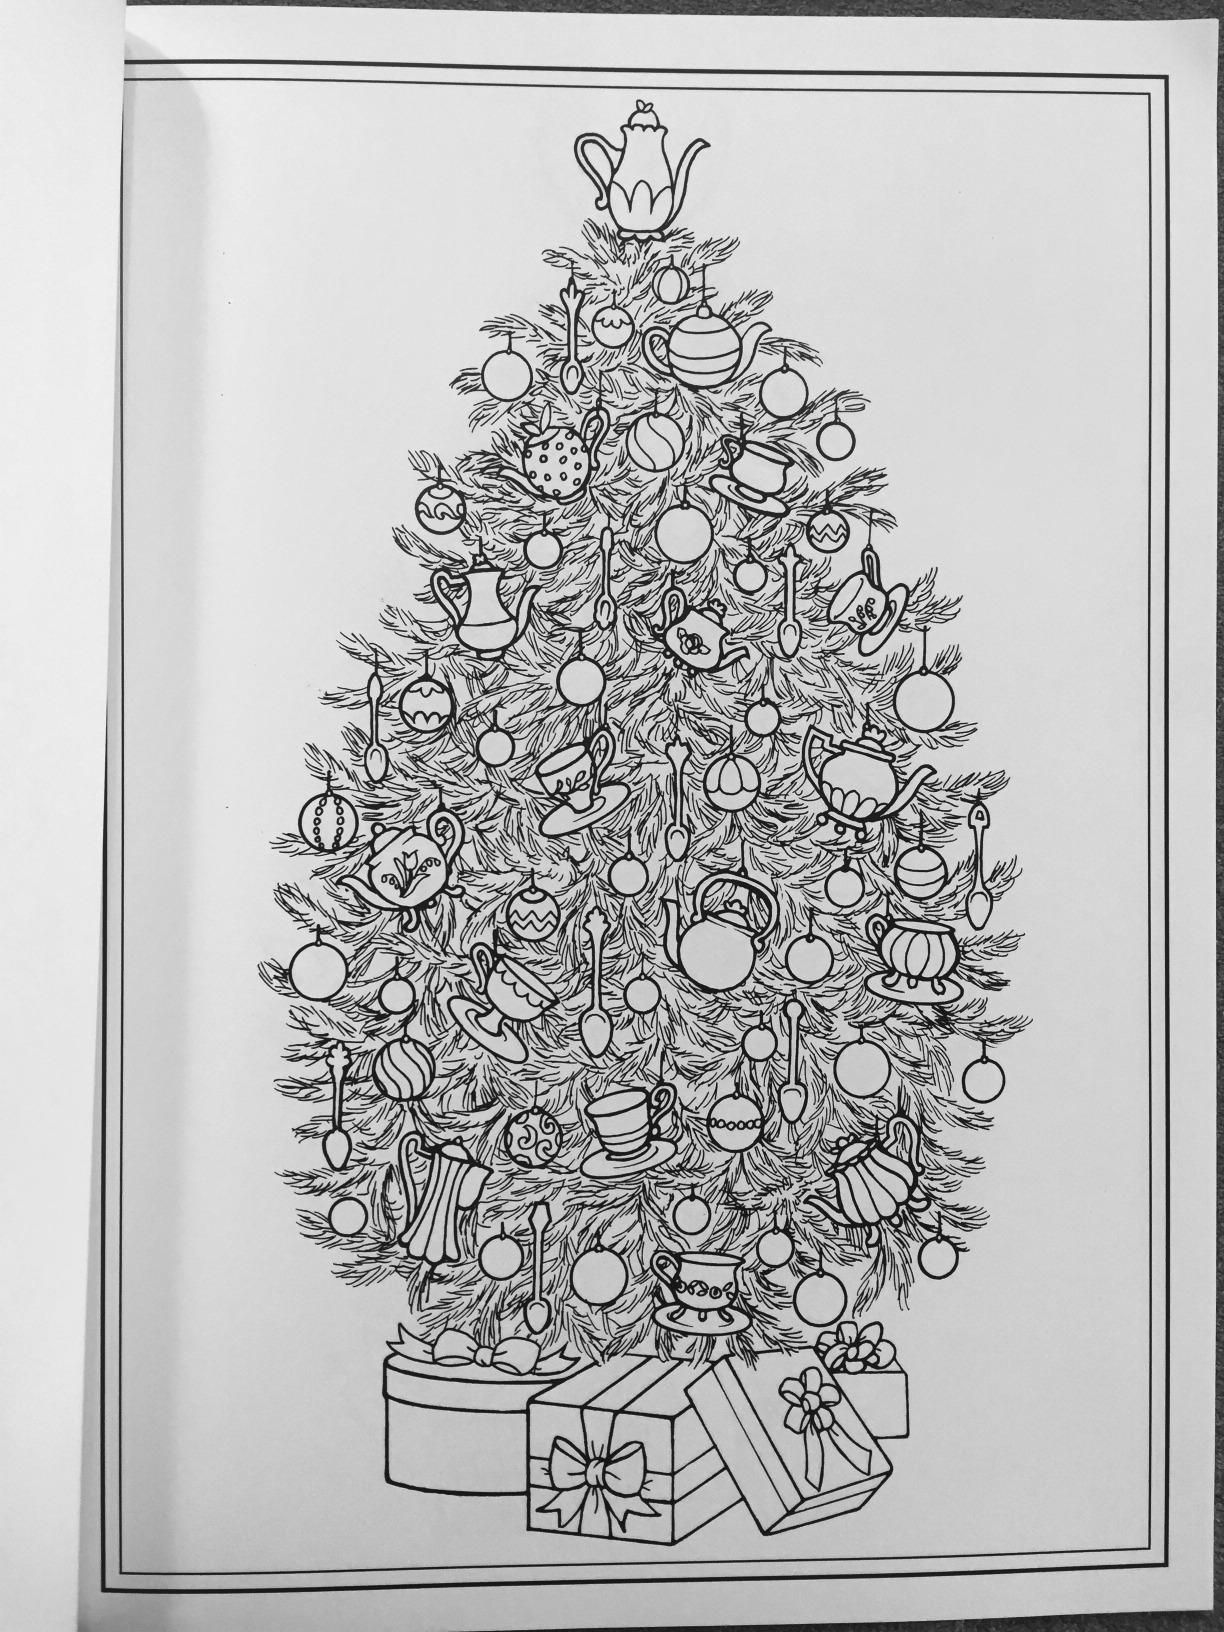 Jolly Christmas Coloring Books for Adults Coloring, Easy